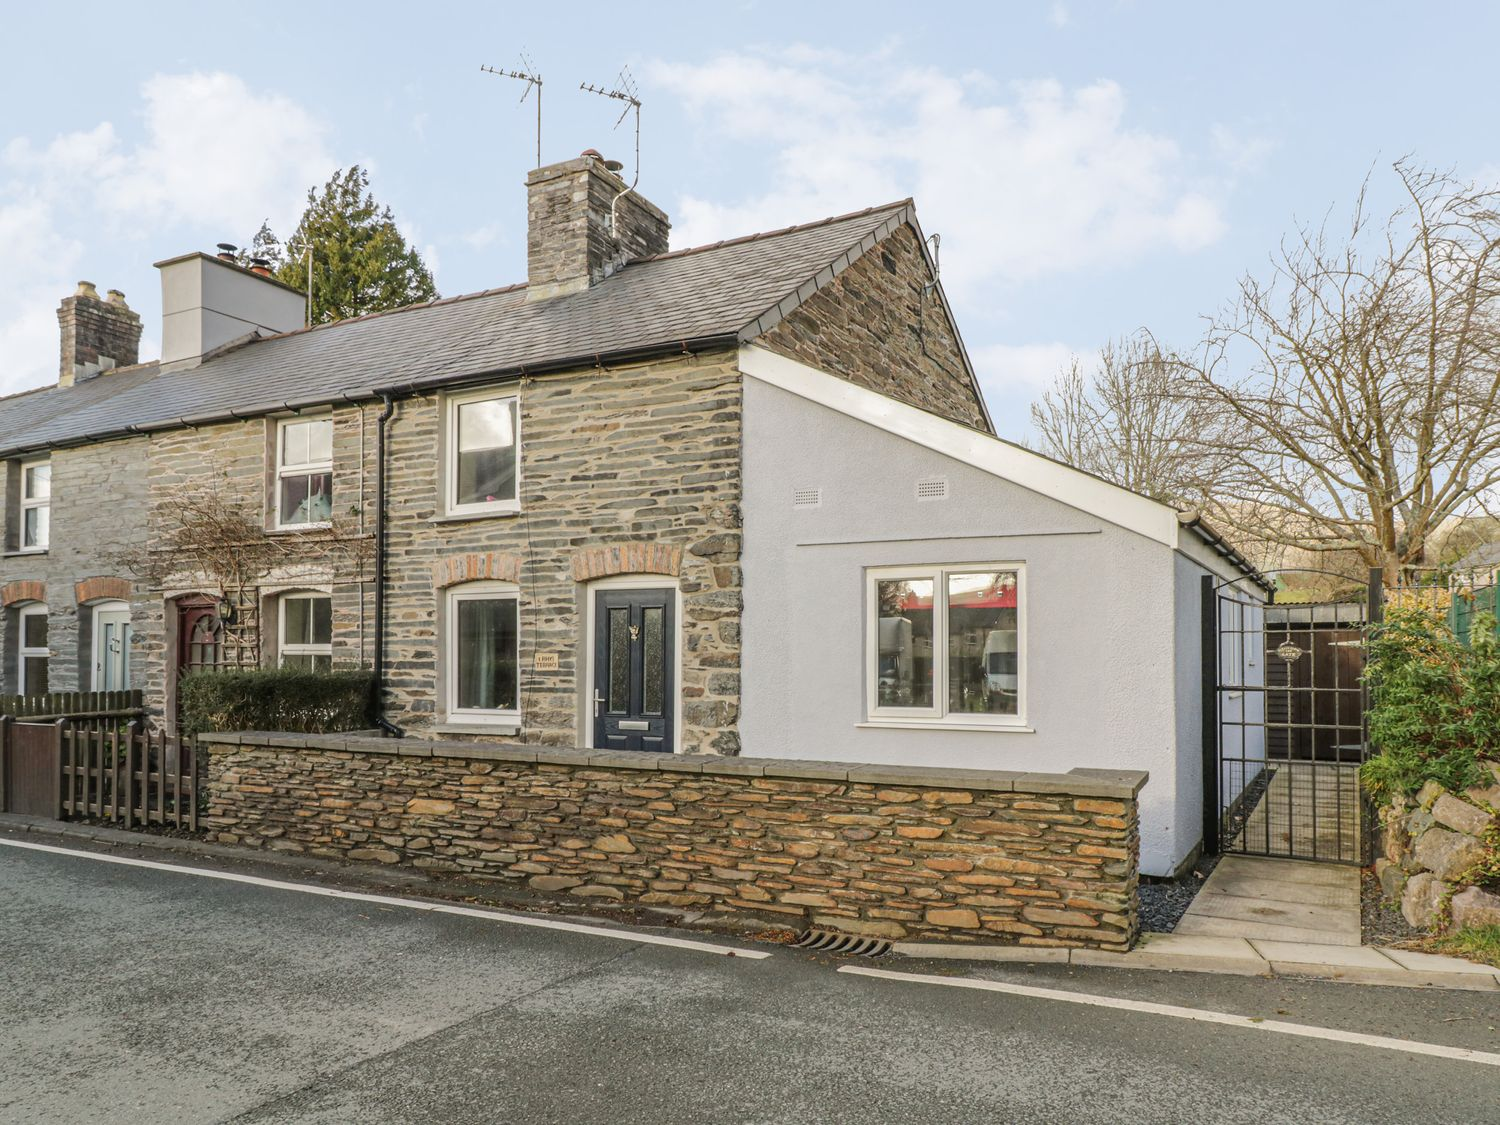 1 Rhys Terrace - Mid Wales - 1021068 - photo 1